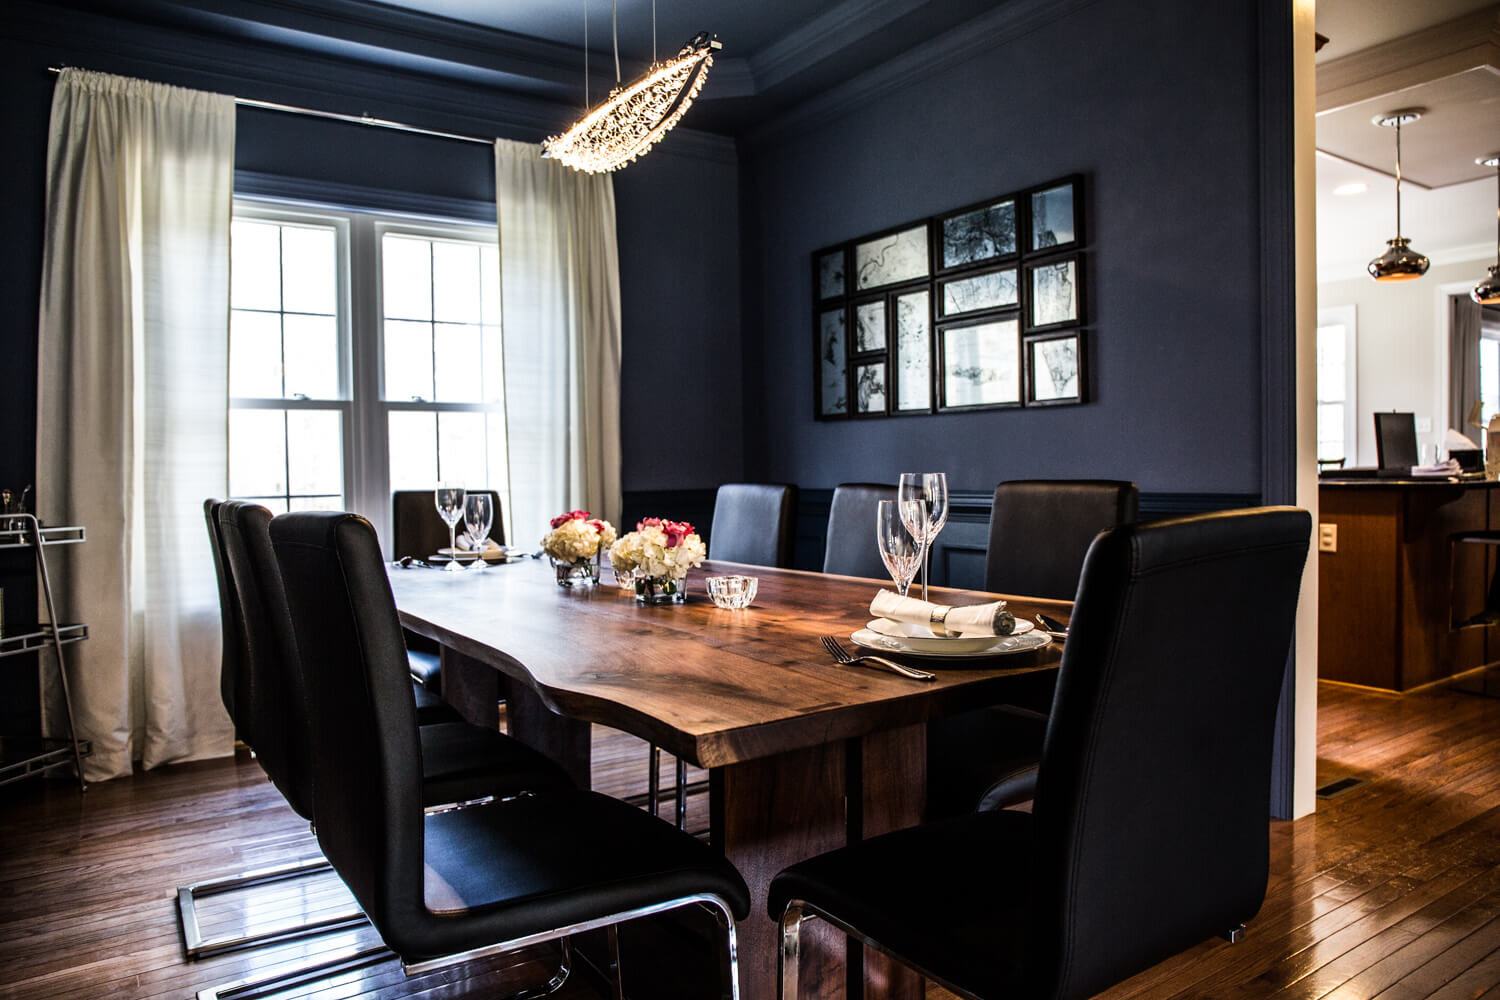 Alicia_Dietz_Live_Edge_Furniture_Dining_Room_Richmond_VA_11